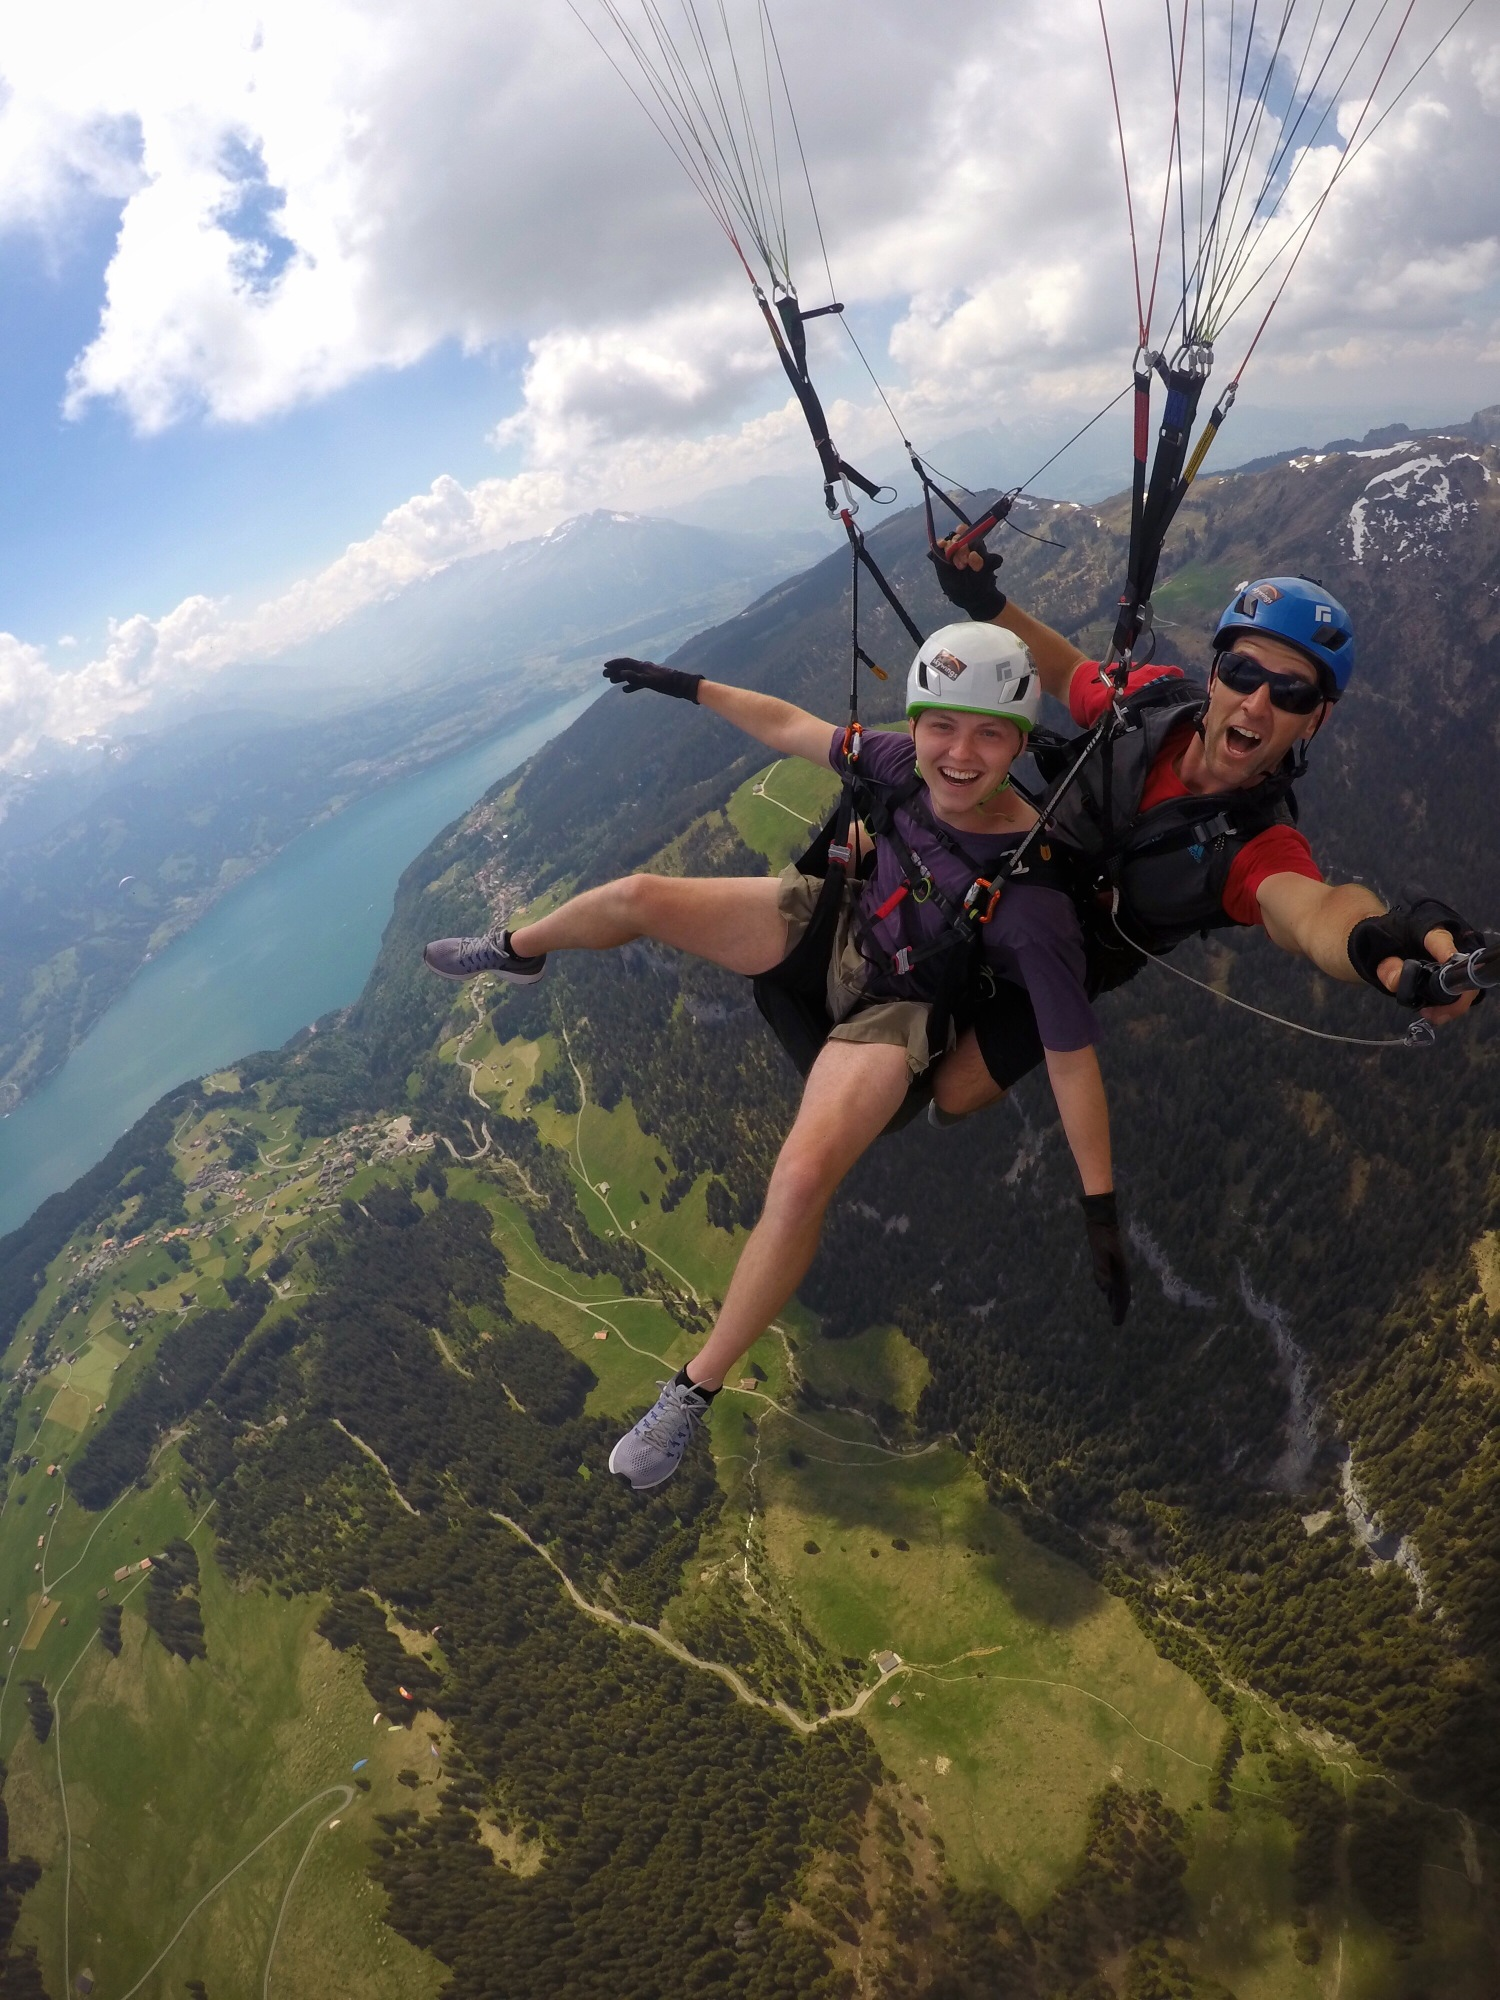 Yesterday, I jumped off a cliff  – Cultural Routes 9